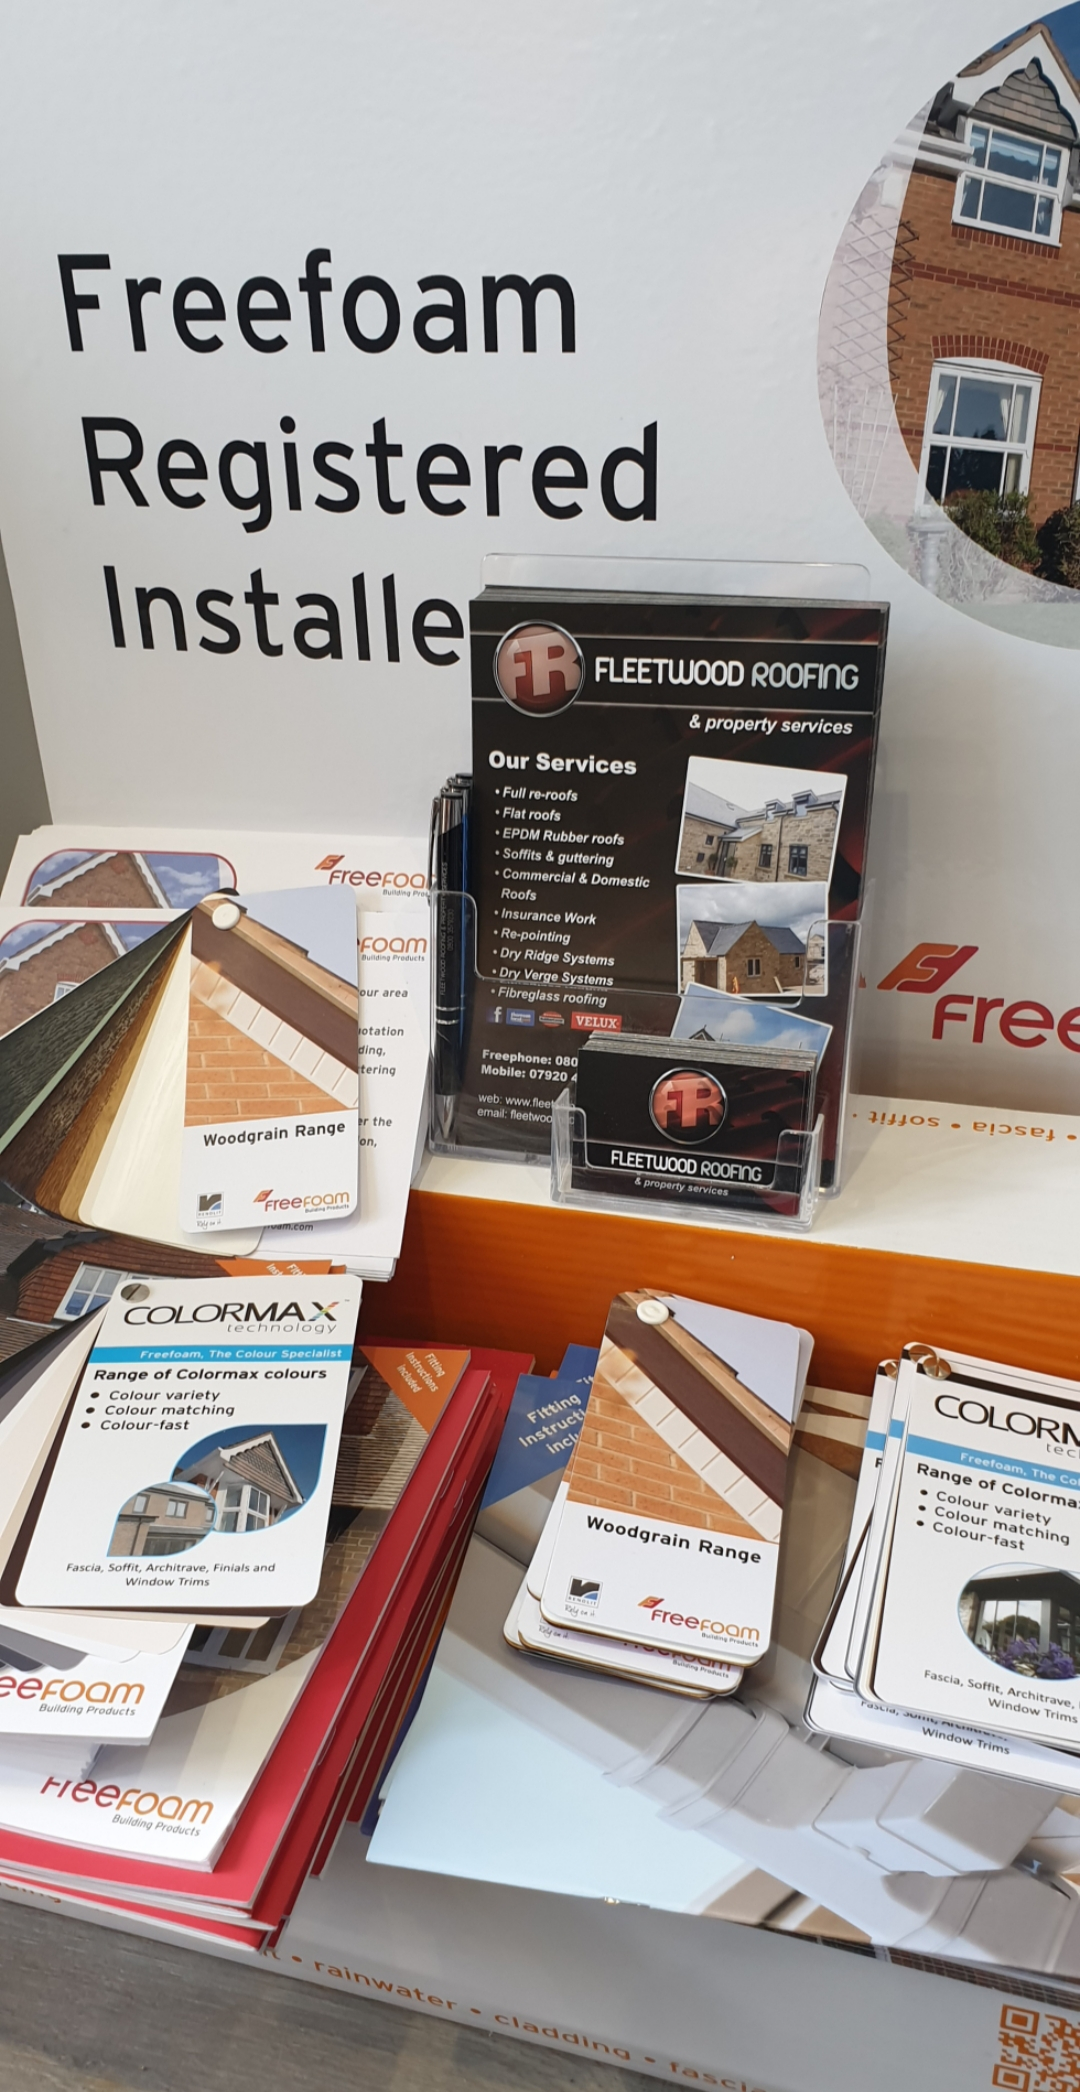 Main photo for Fleetwood Roofing & Property Services